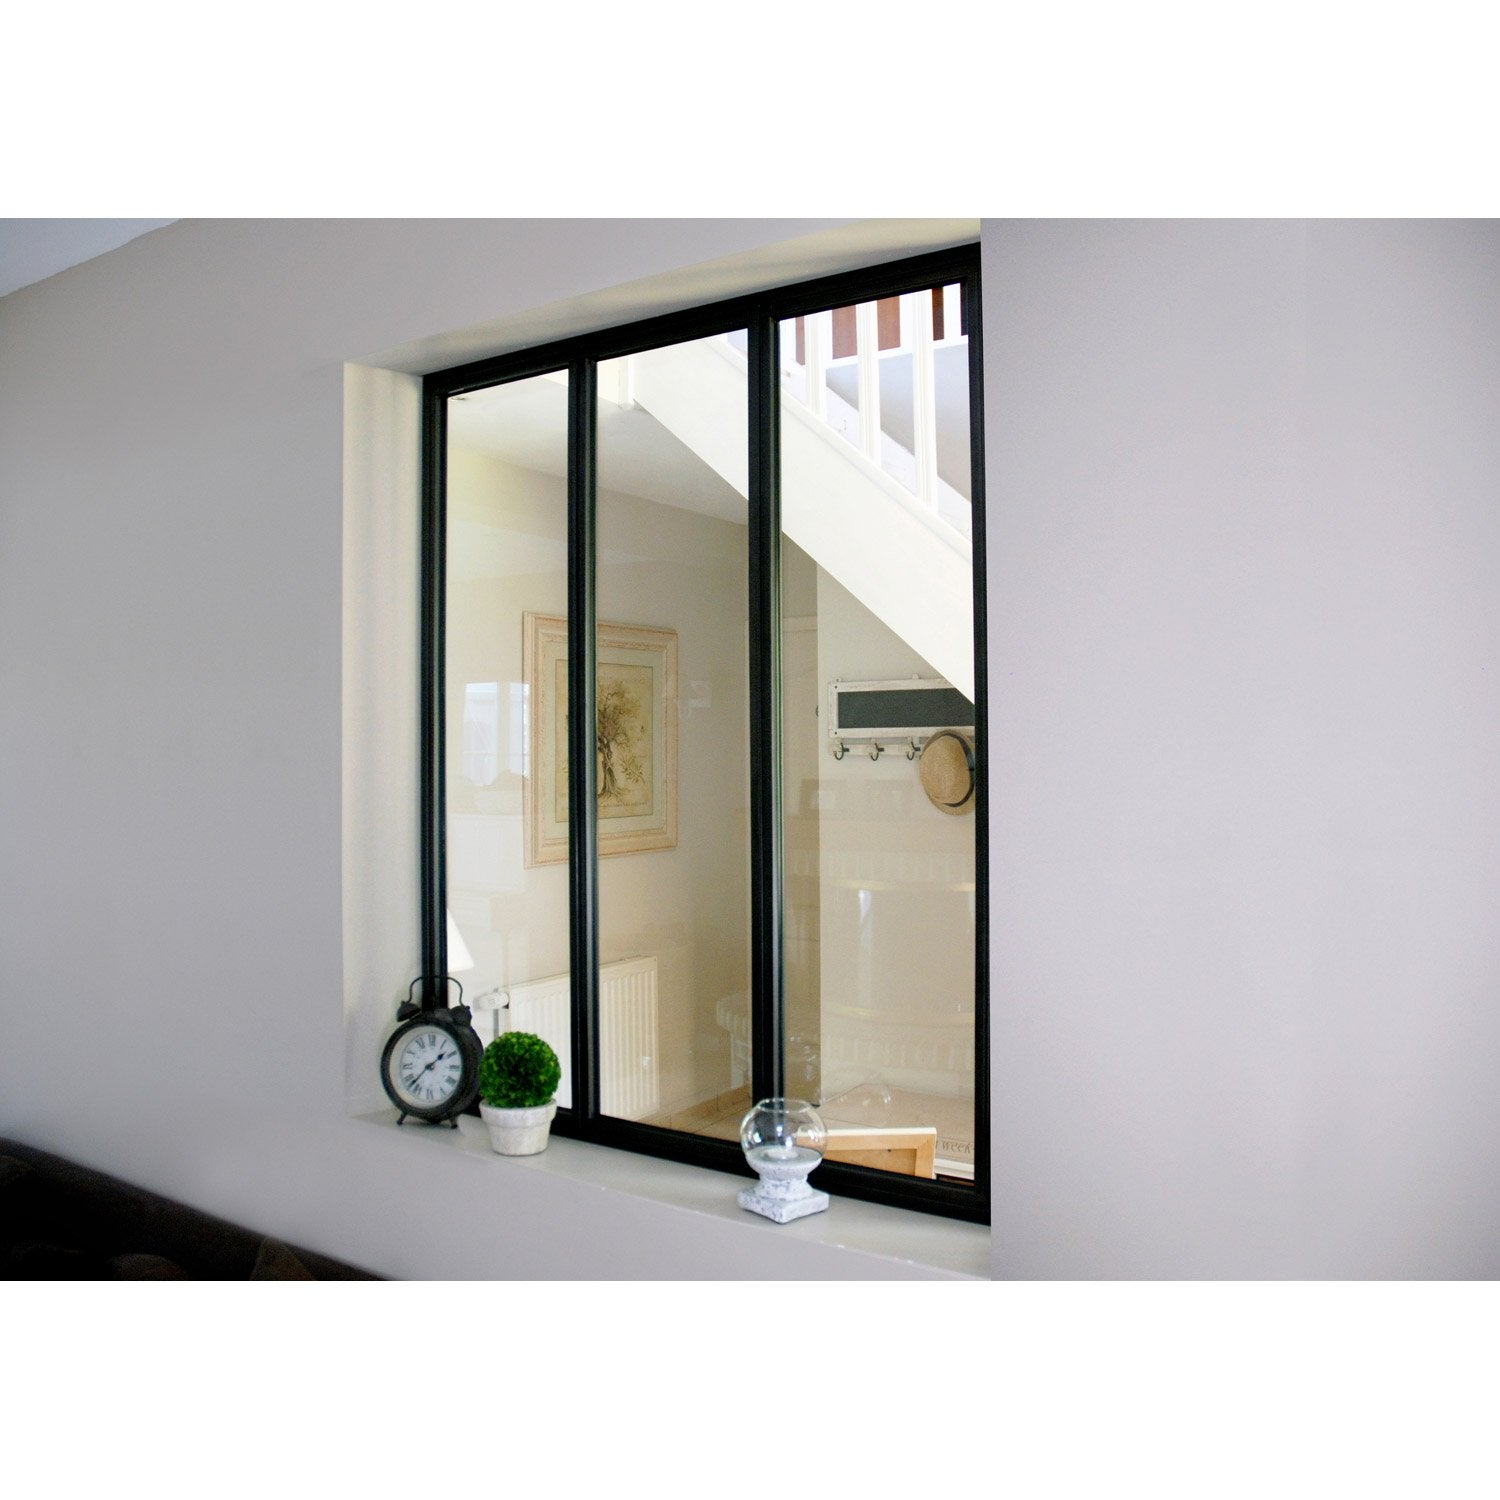 Verri re d 39 int rieur atelier en kit aluminium noir 3 for Verrieres interieur style atelier